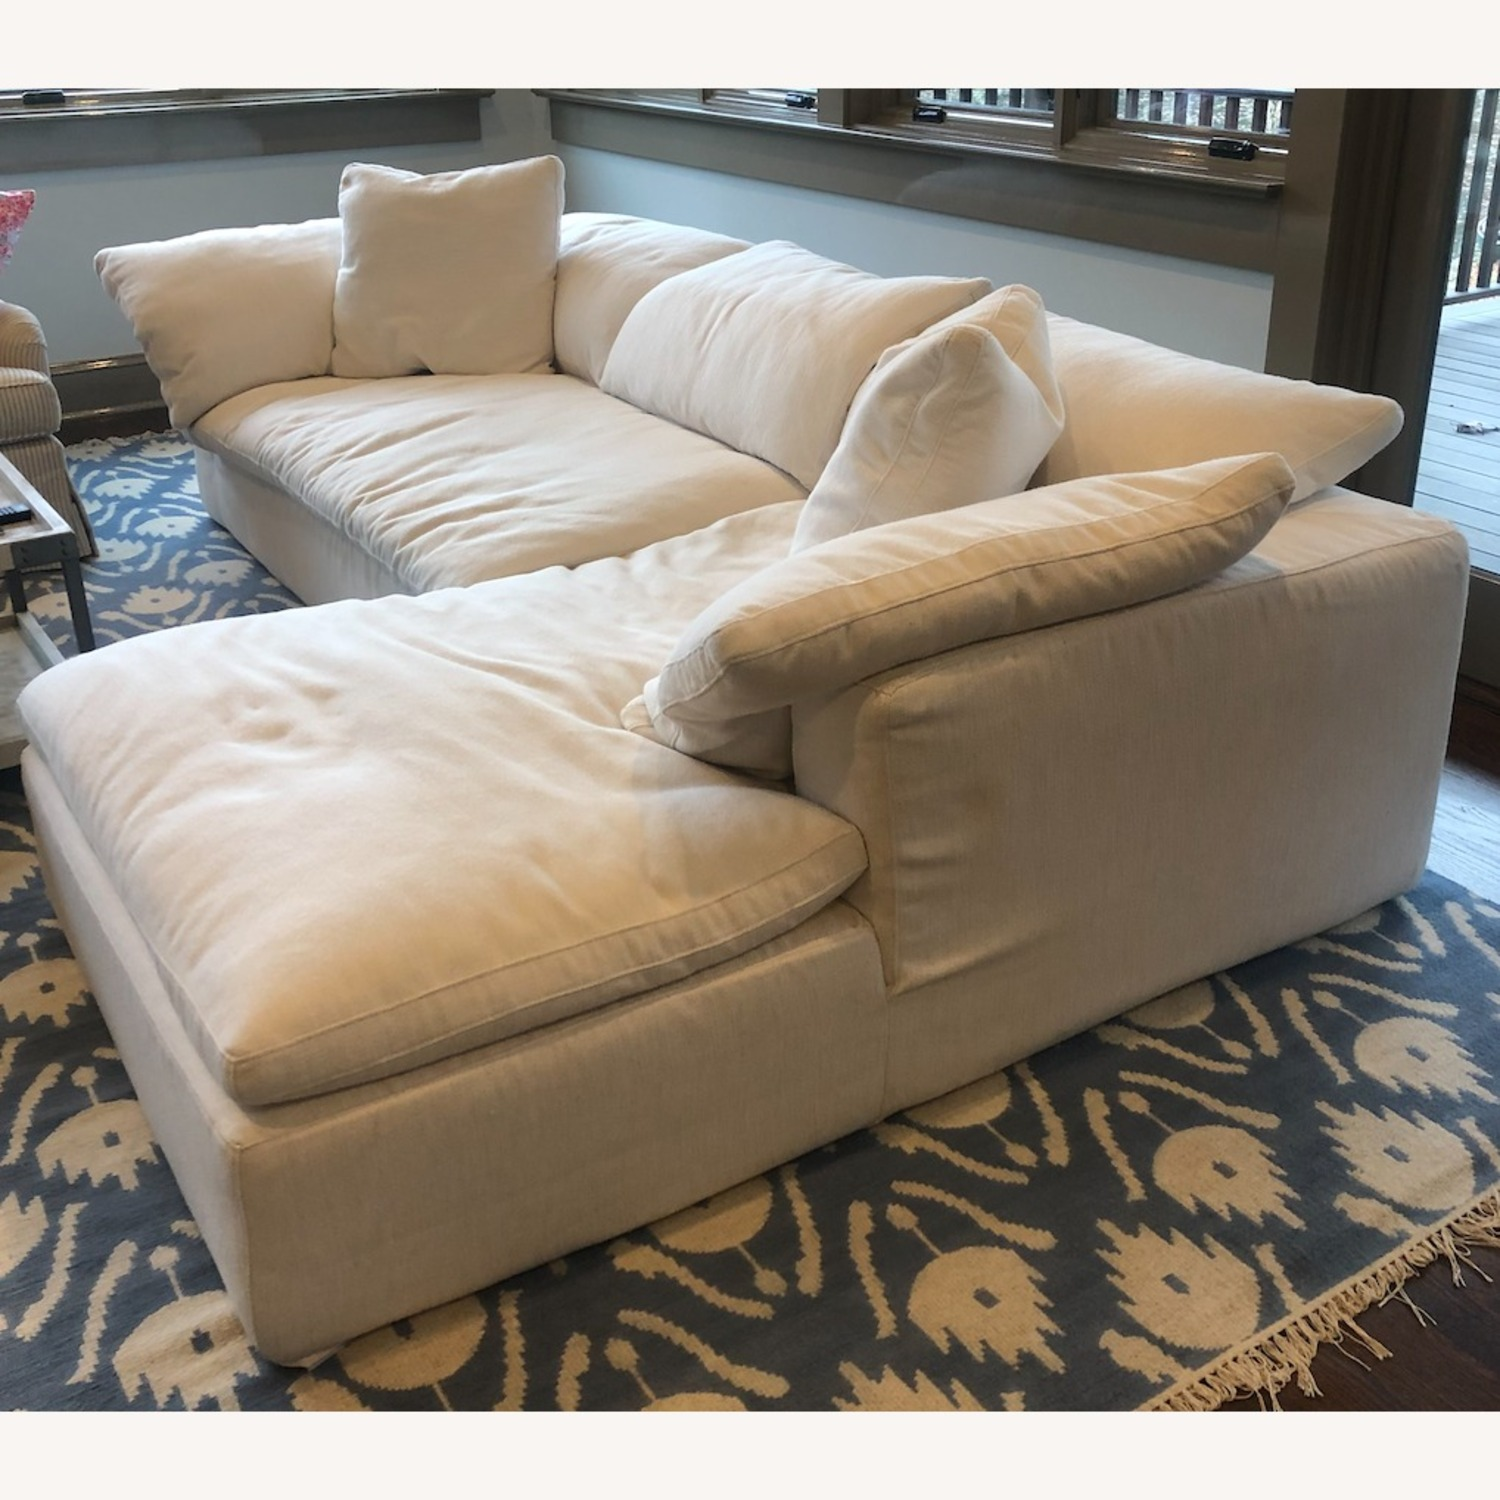 Restoration Hardware Cloud Collection Sectional - image-2